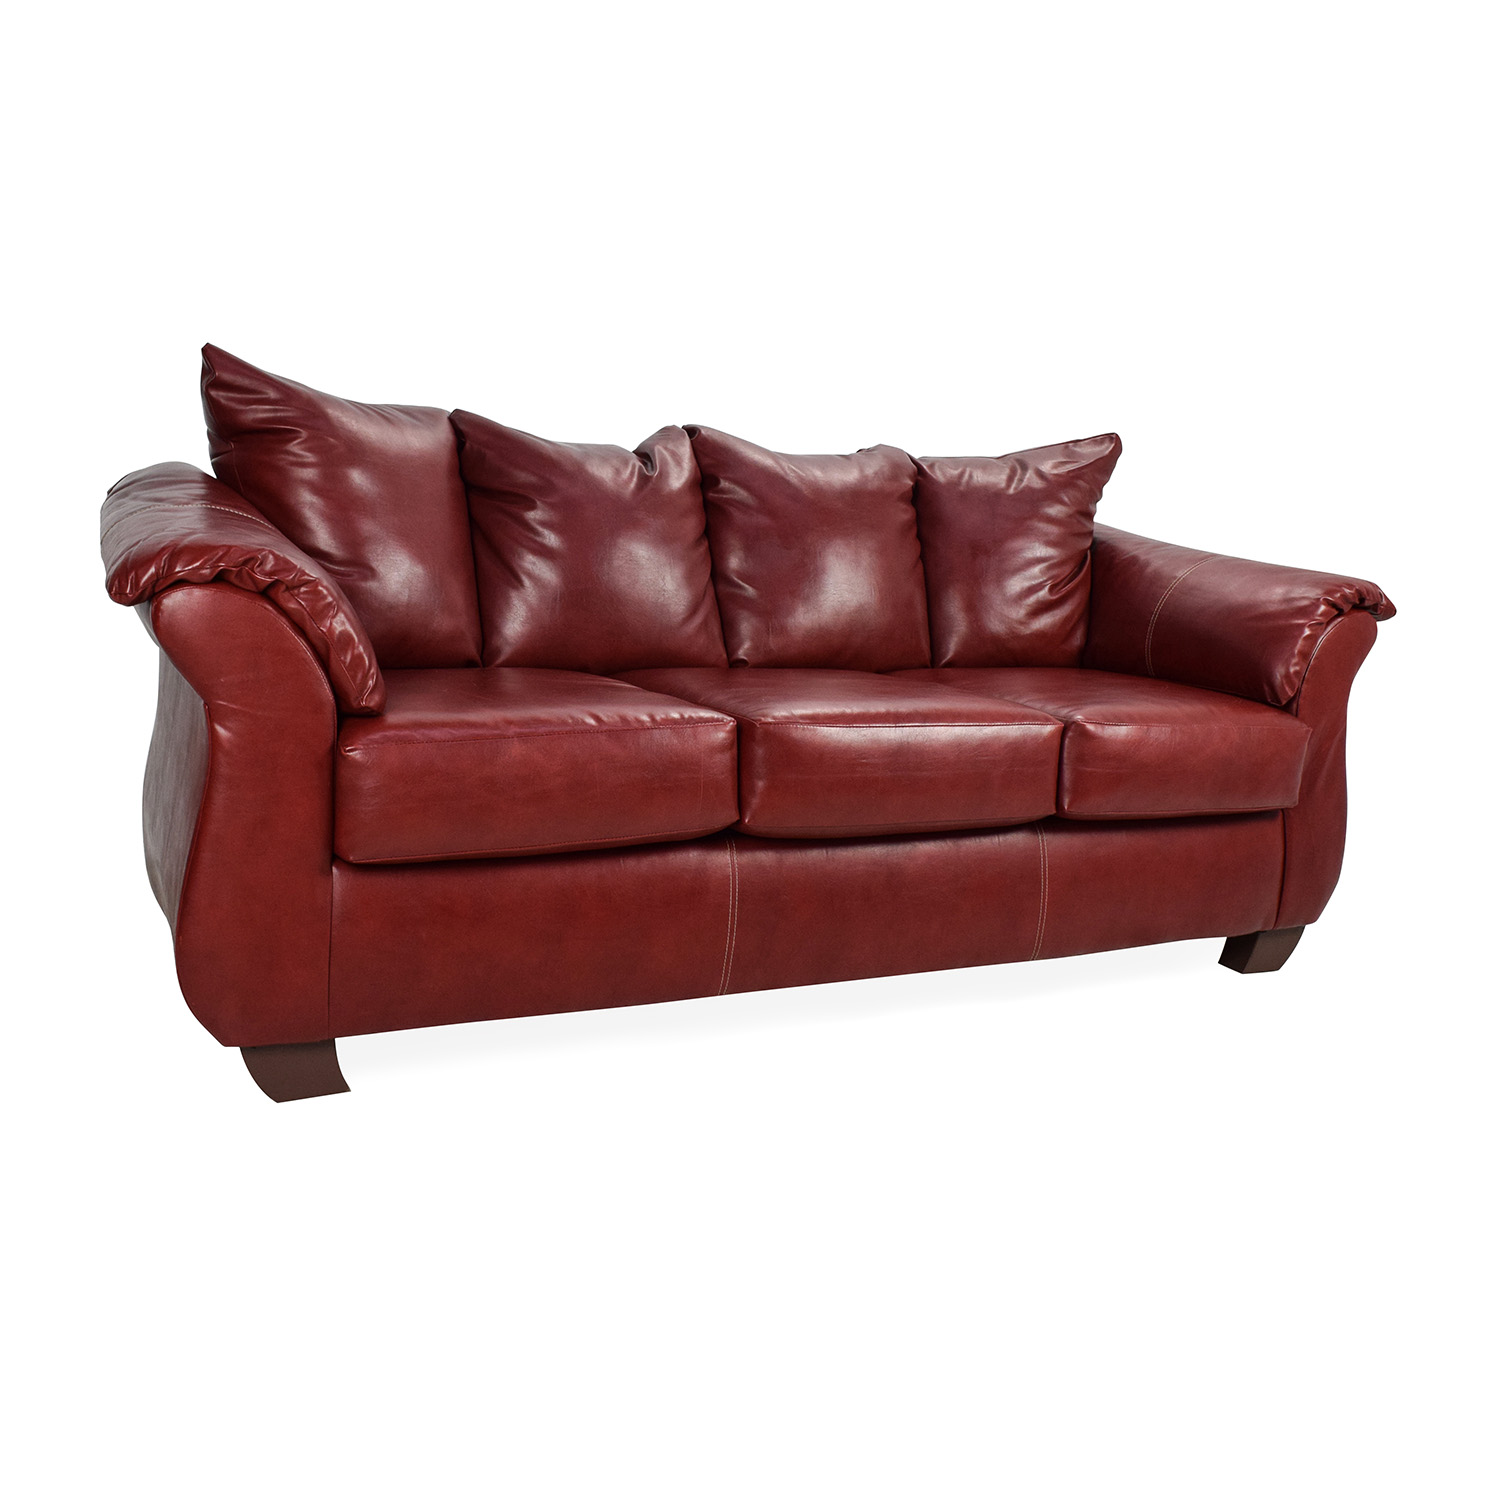 72 Off Haymarket Haymarket Sierra Red Leather Sofa Sofas